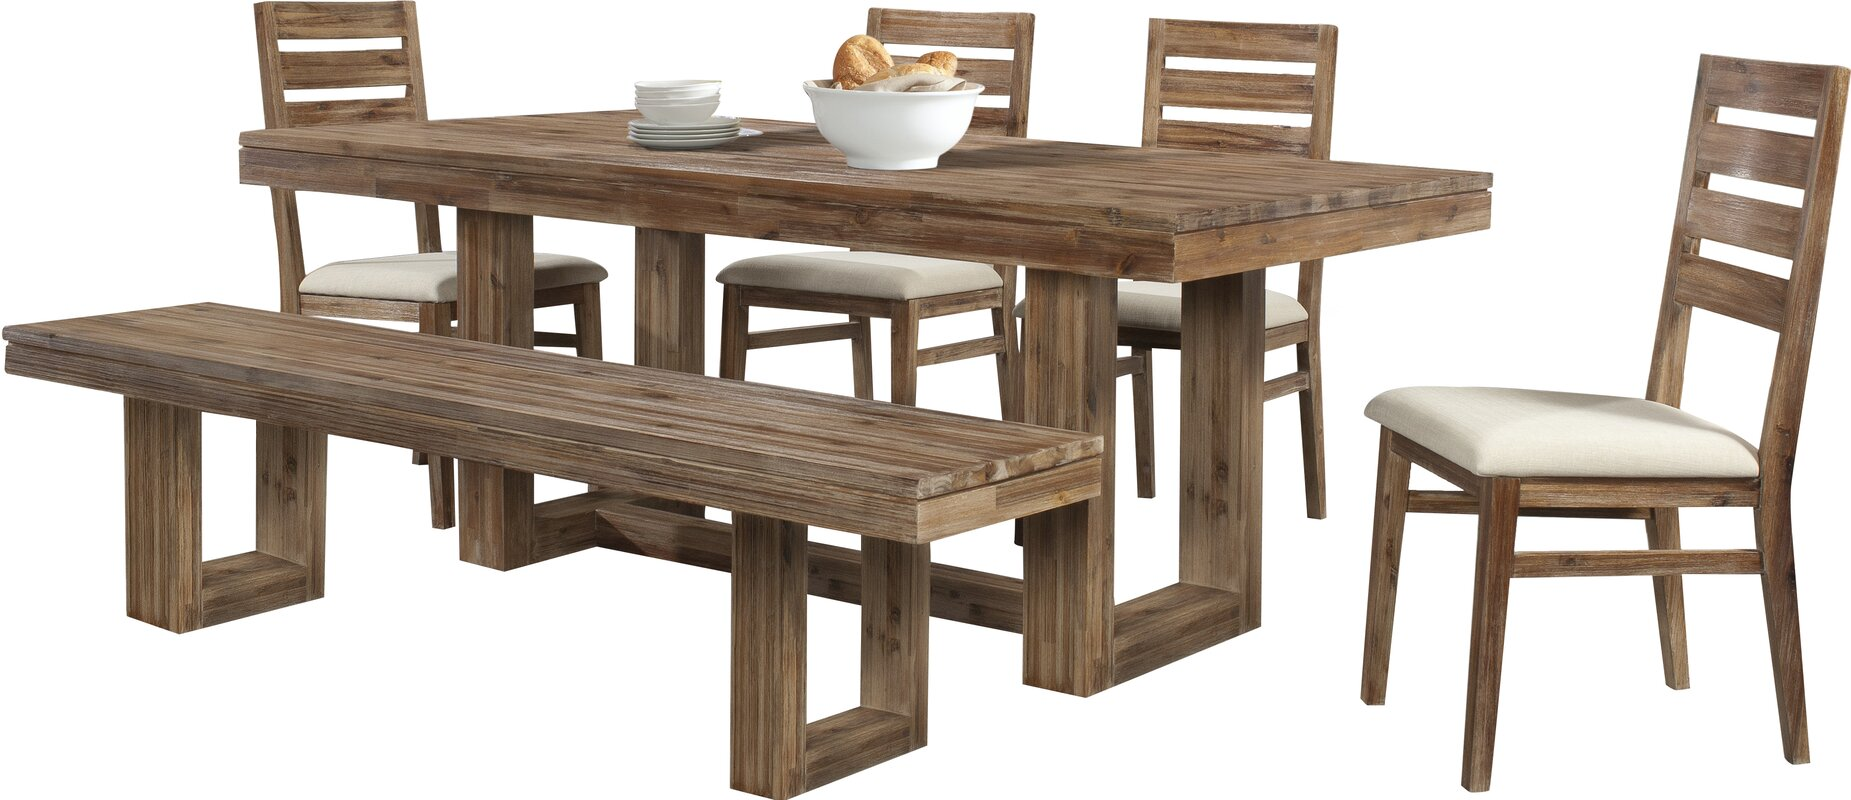 100 6 piece dining room set signature design by ashley lace